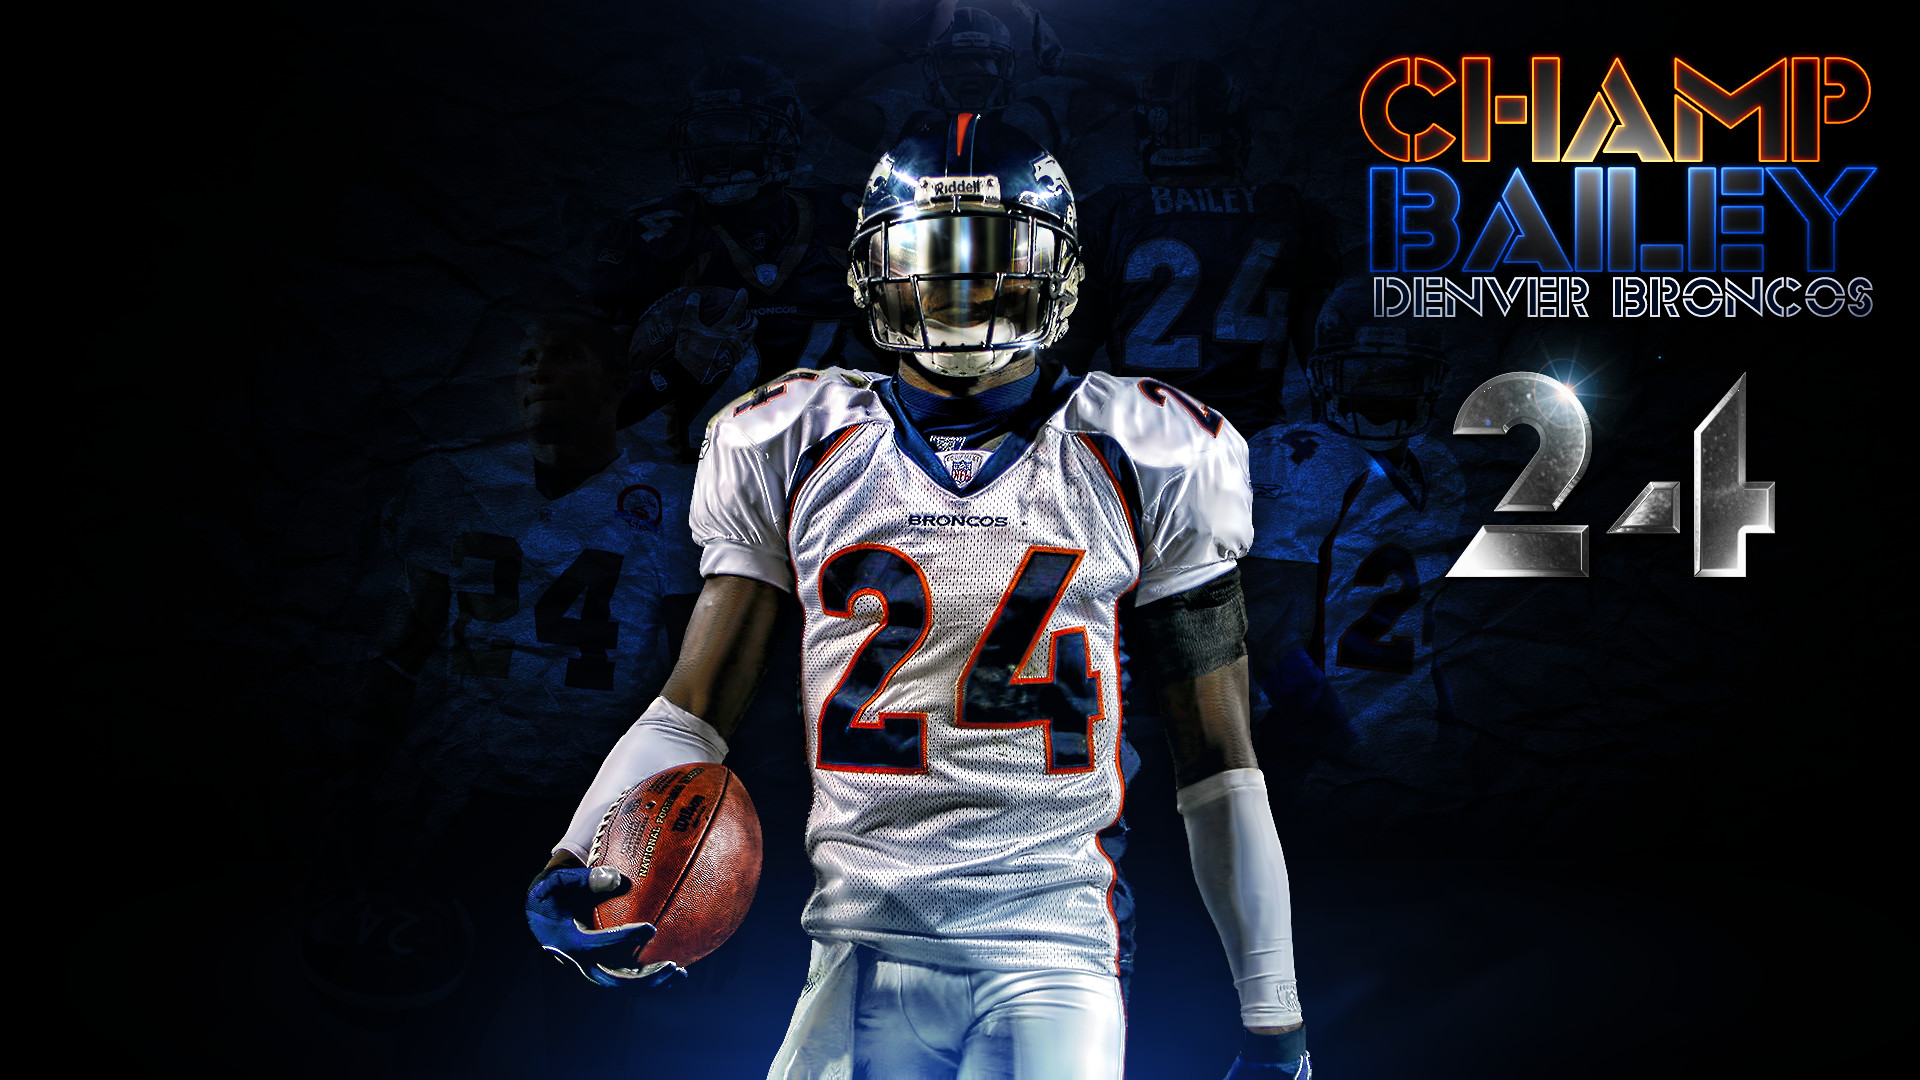 denver broncos hd wallpapers 1080p high quality | sharovarka | Pinterest |  Hd wallpaper